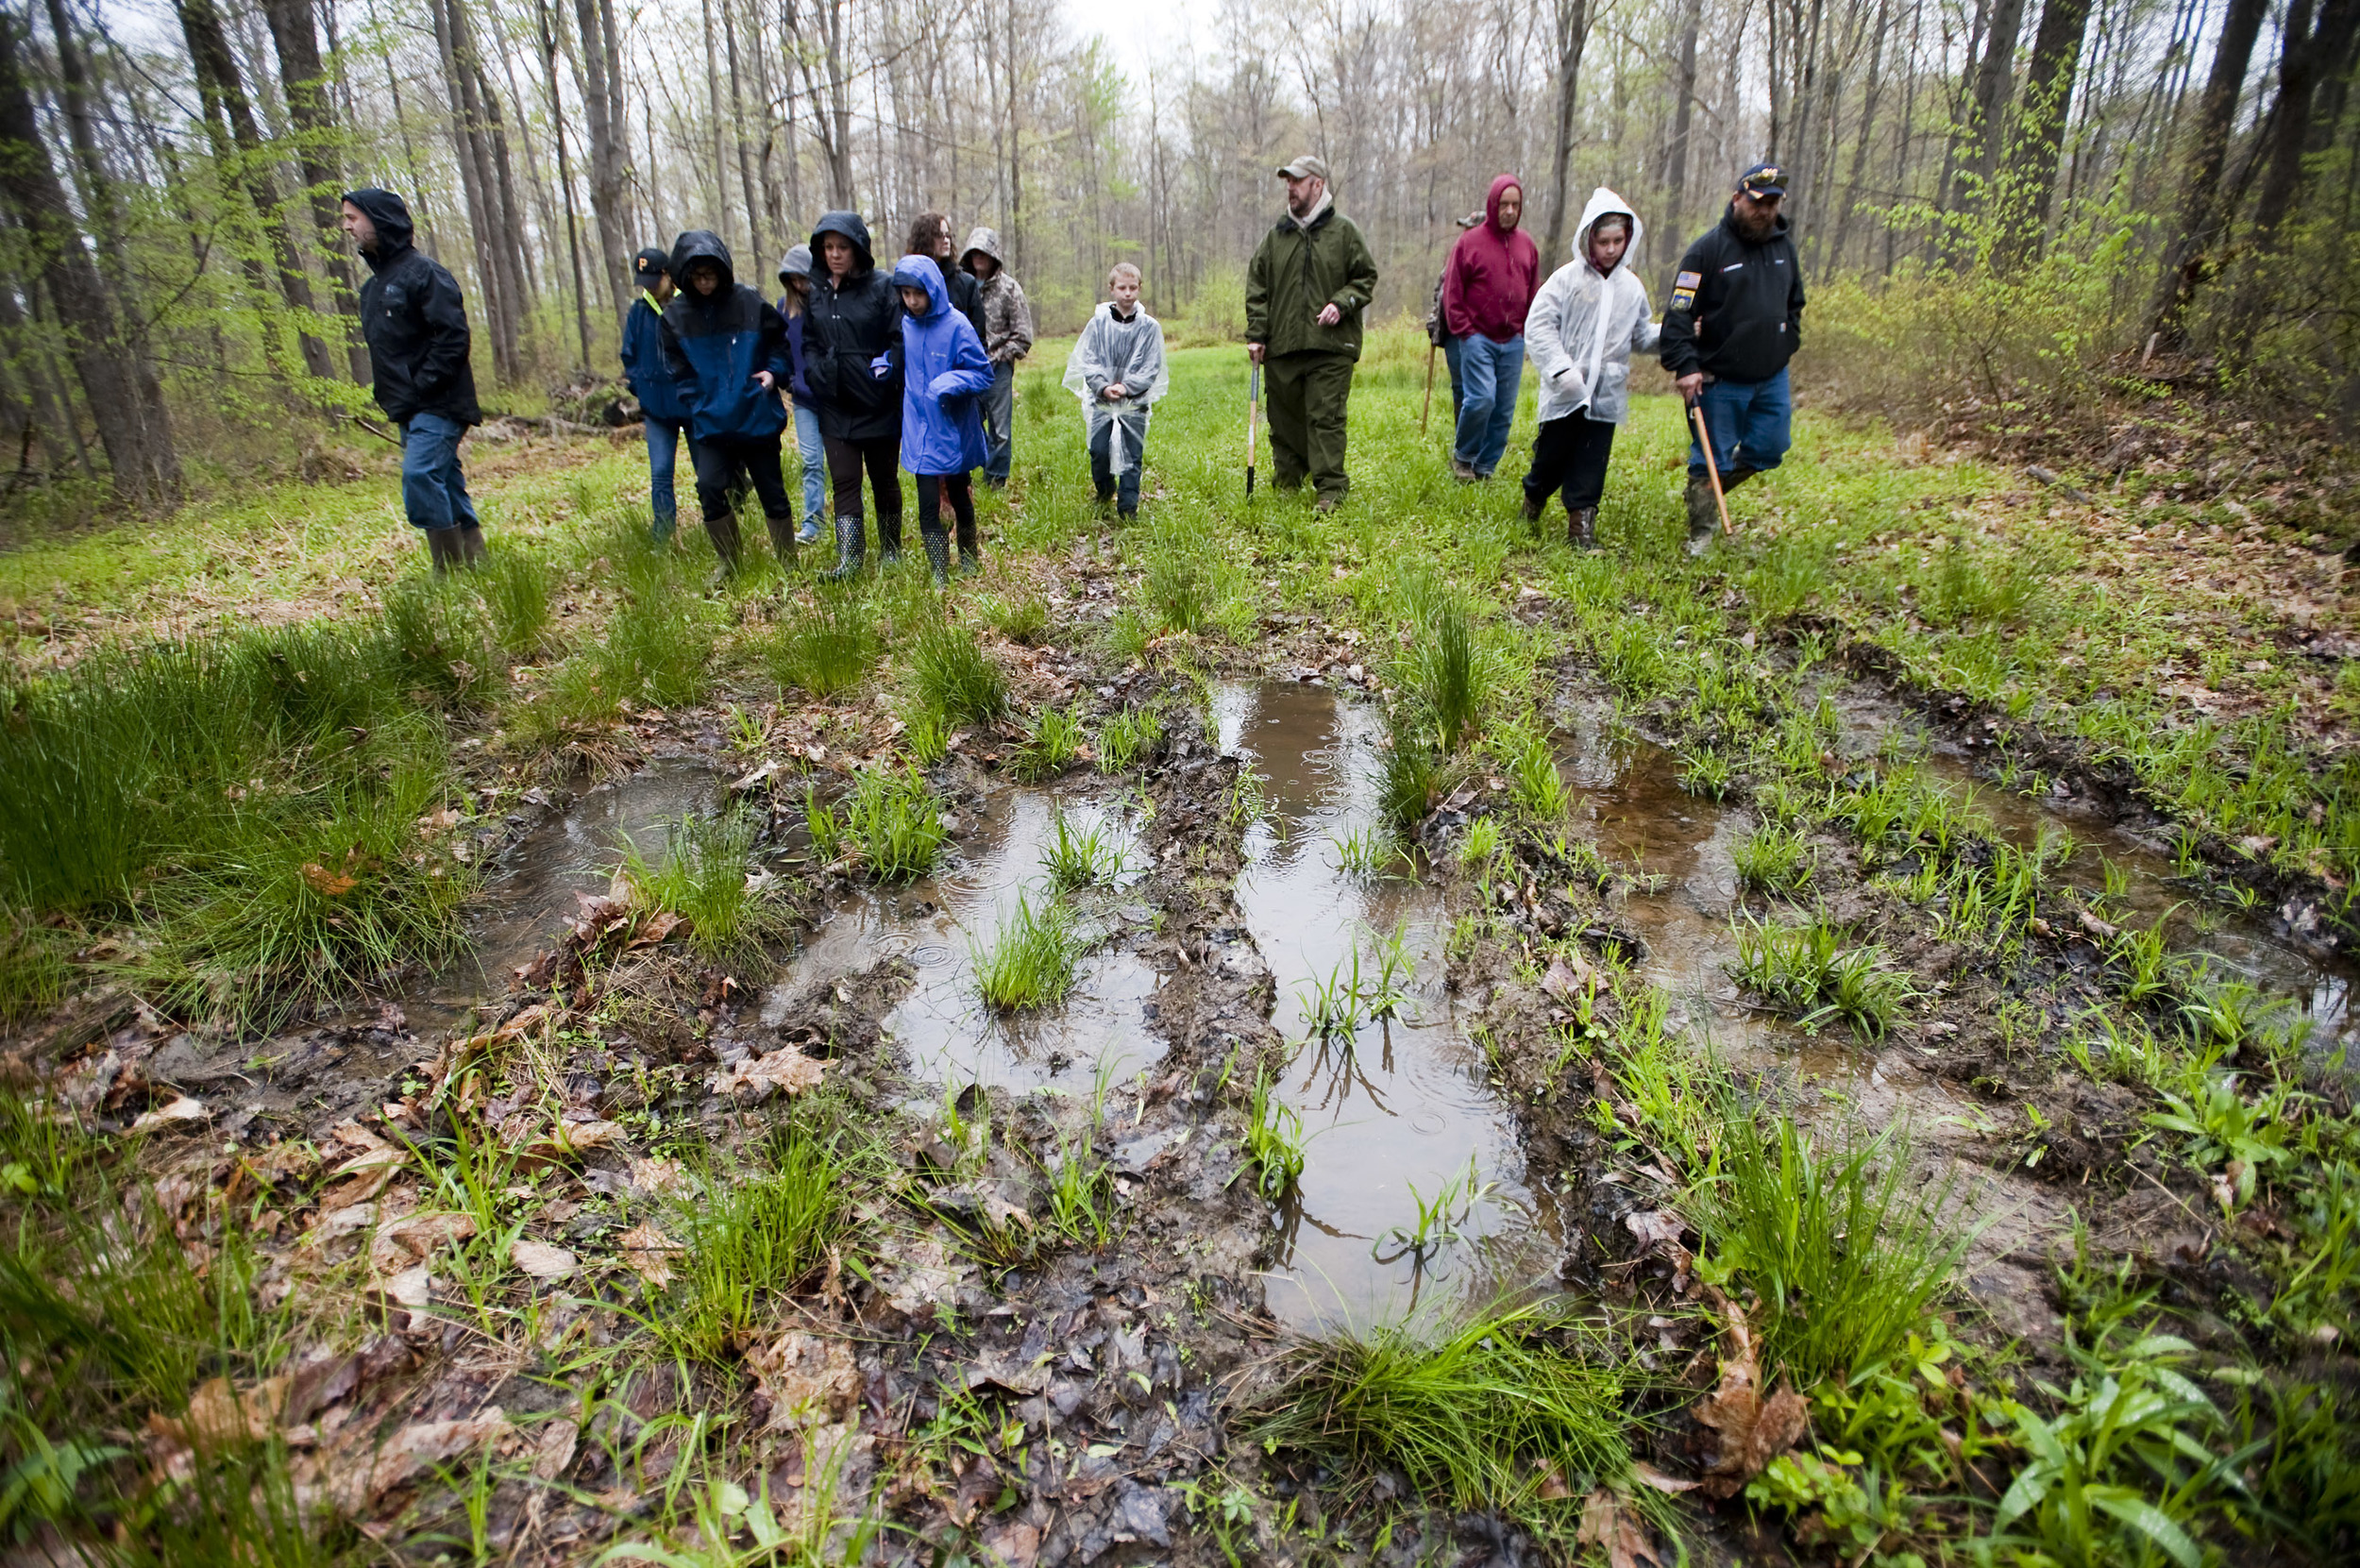 Event organizer and Bigfoot expert Eric Altman of Jeannette (center) leads a group along a damp trail as he educates on what to hear and look for when Bigfoot researching during the 2016 Pennsylvania Bigfoot Camping Adventure at Benner's Meadow Run campground near Farmington on Friday, May 6. The Farmington area has been known as a Bigfoot hotbed with numerous encounters reported by campers, hunters and locals.